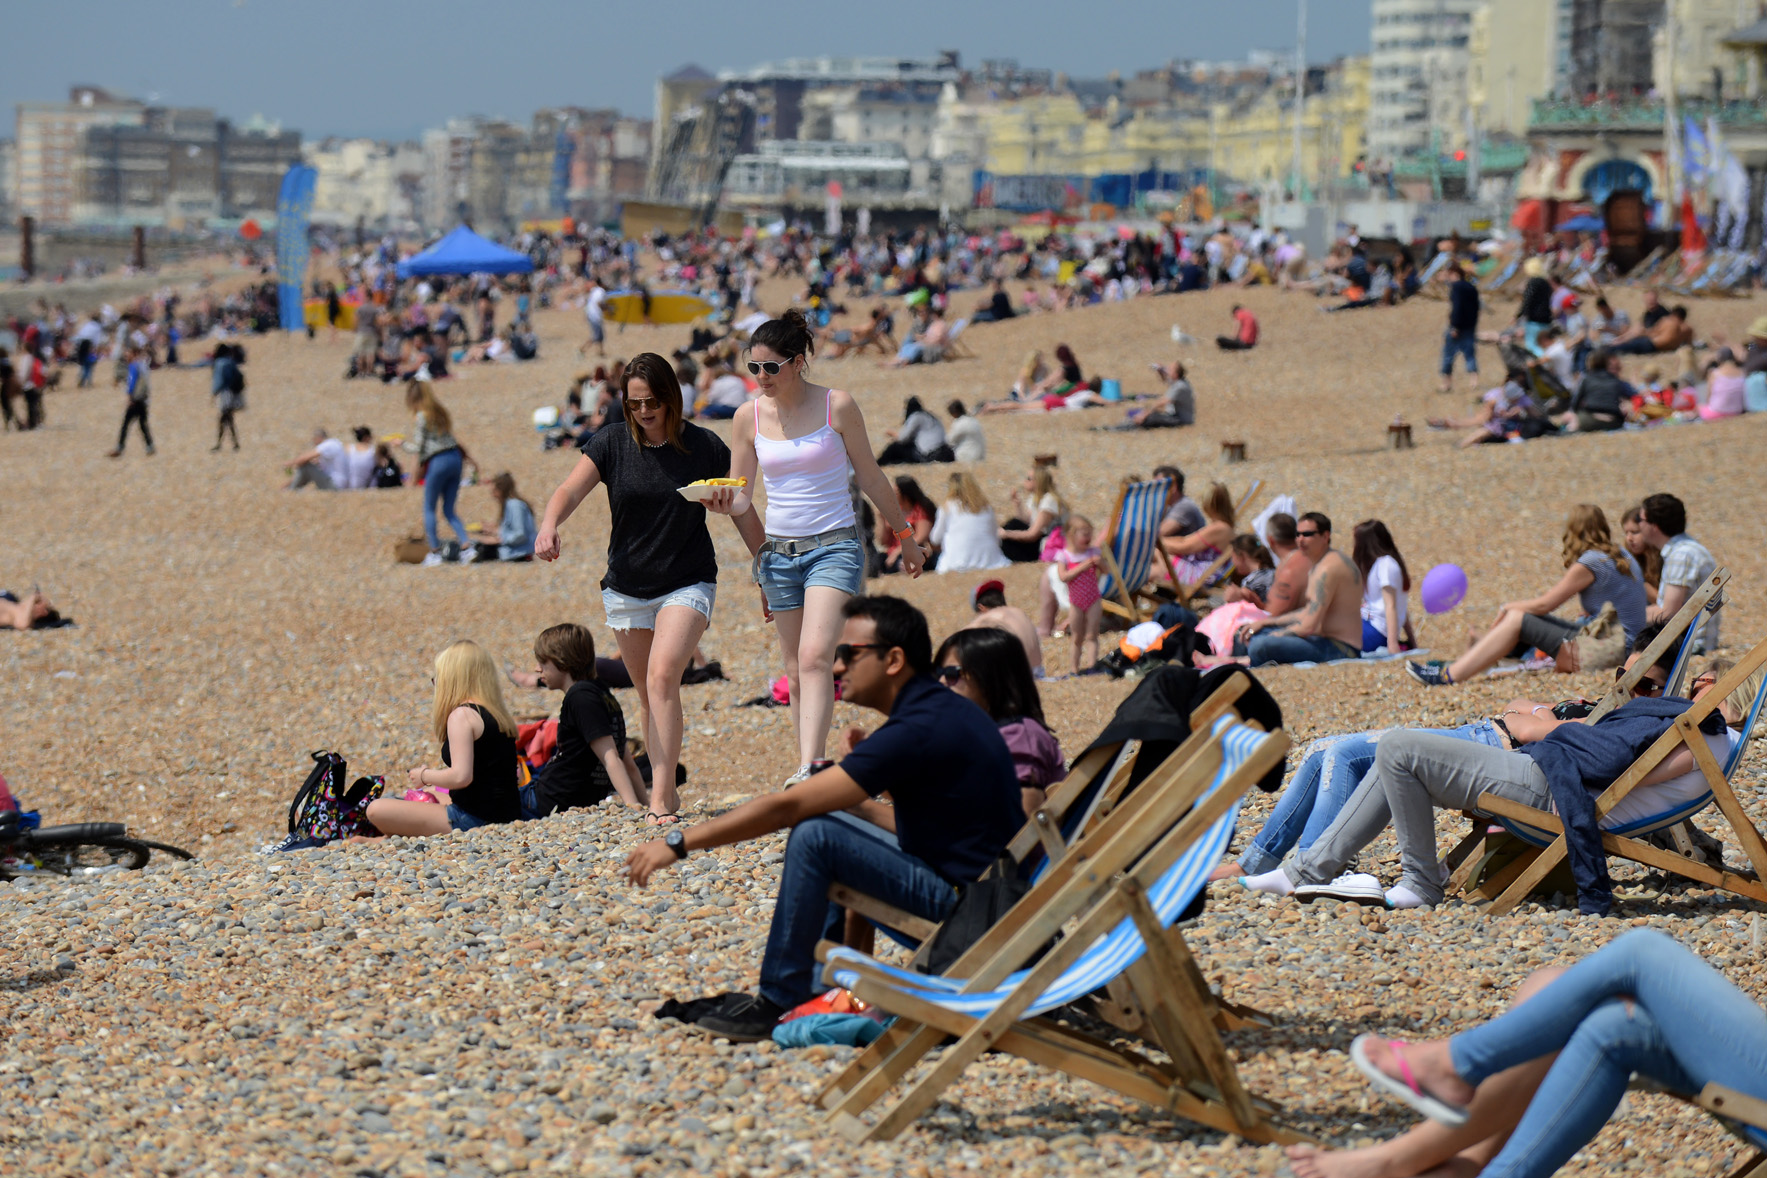 Brighton basks in sweltering weekend temperatures